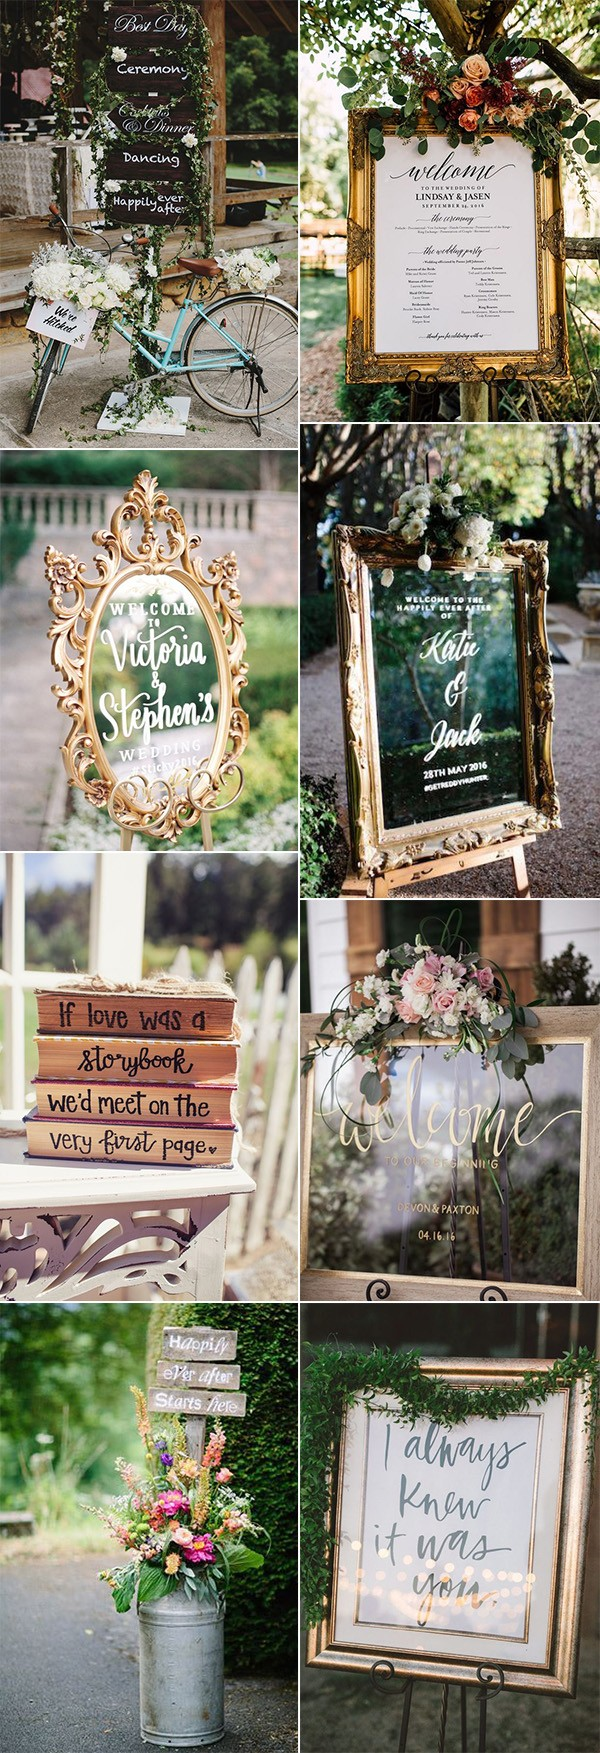 shabby chic vintage wedding sign decoration ideas